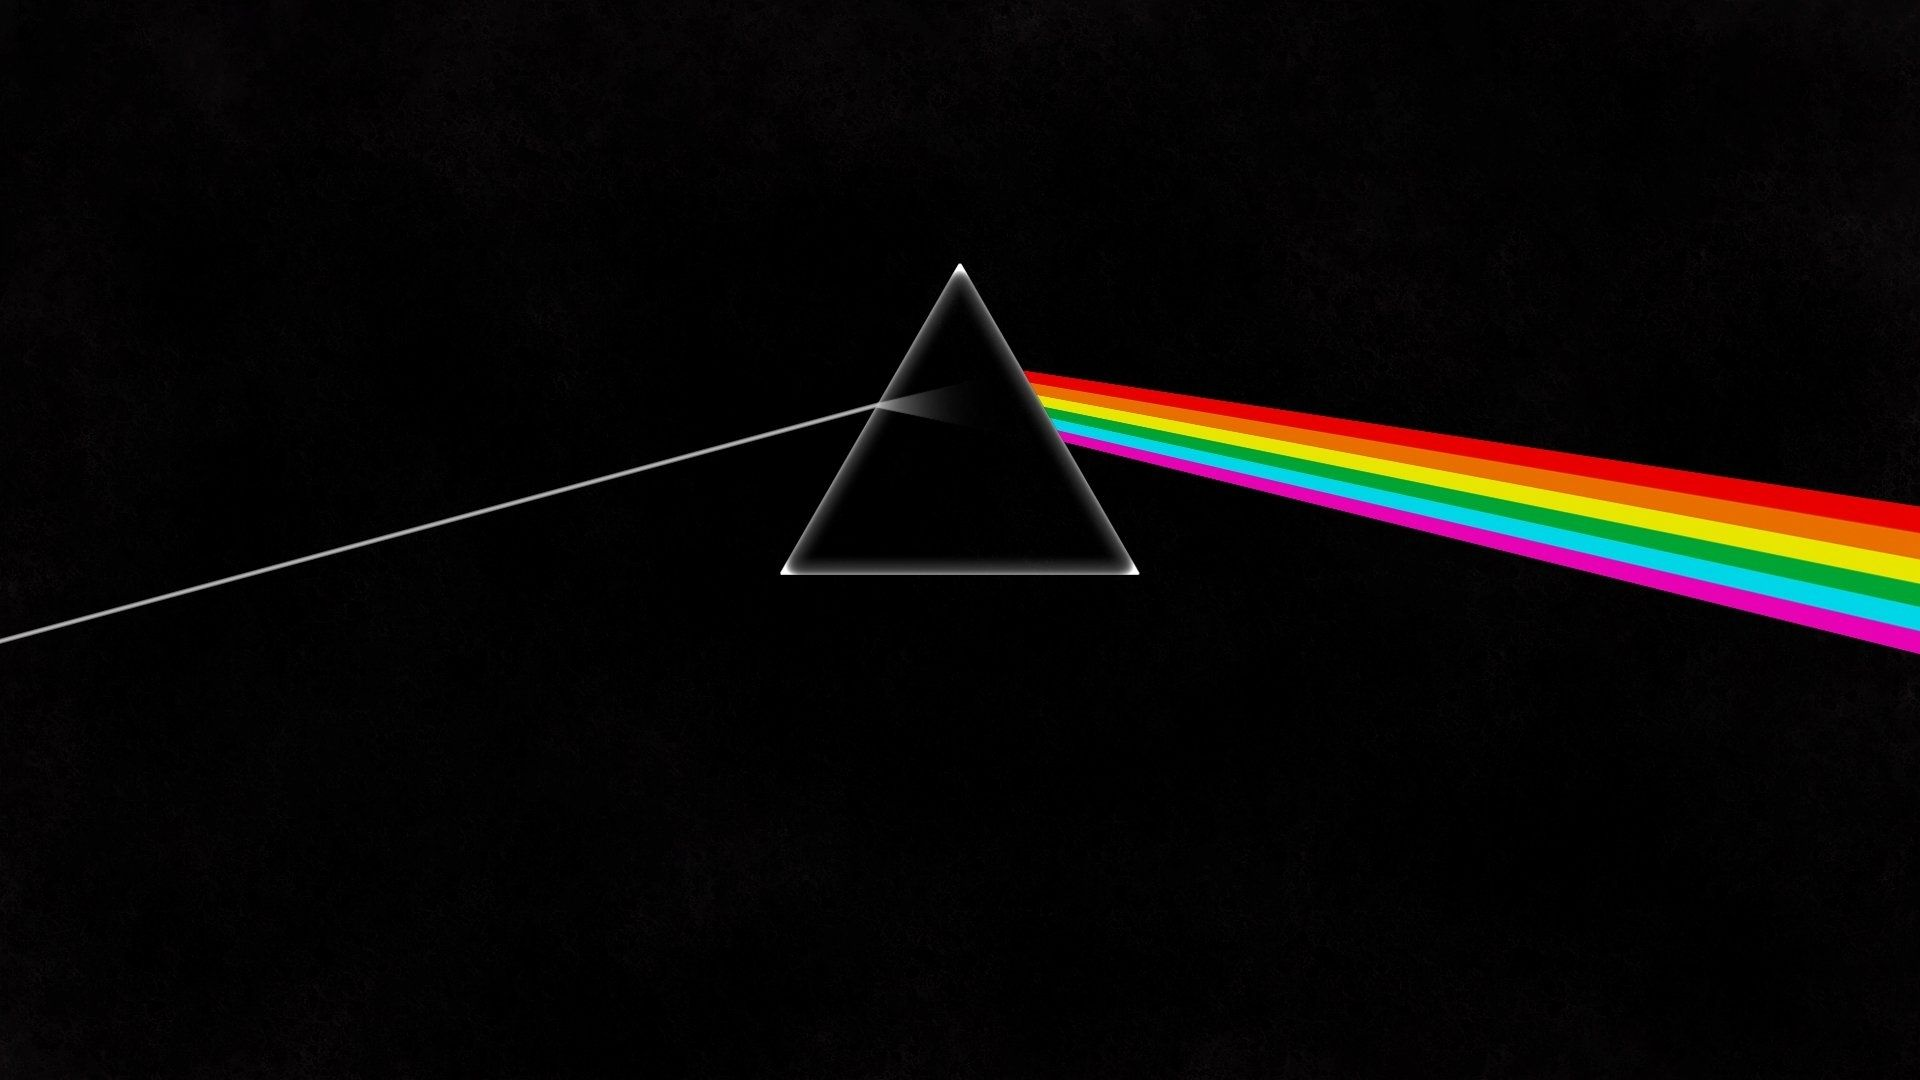 10 Best Pink Floyd Wallpaper 1920x1080 Full Hd 1080p For Pc